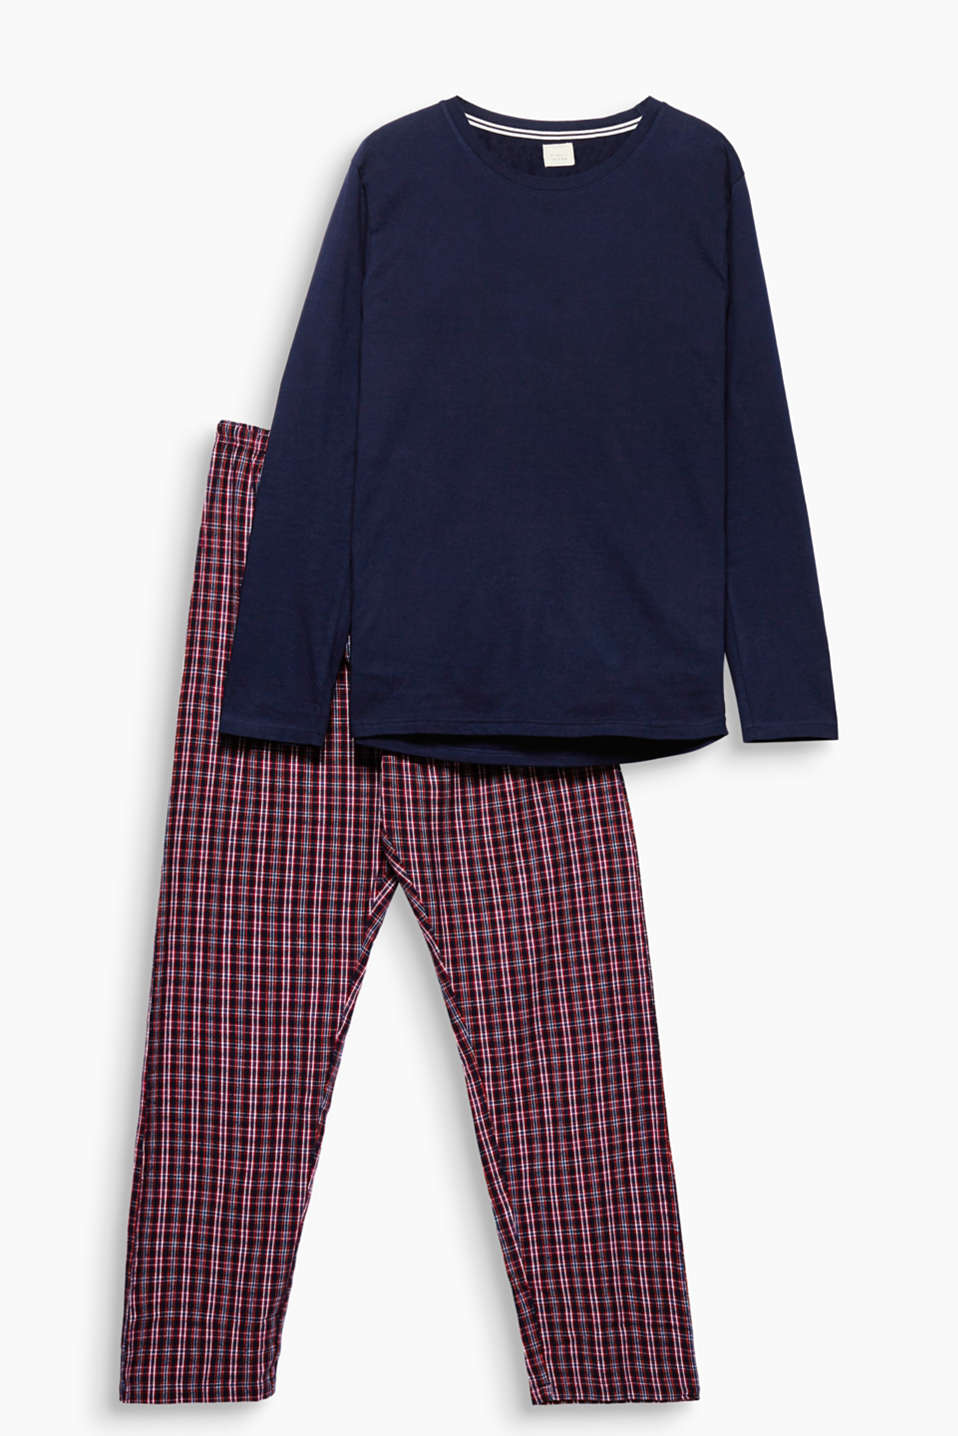 As simple and comfy as they should be - your new fave pyjamas consisting of a long sleeve top and soft flannel bottoms!